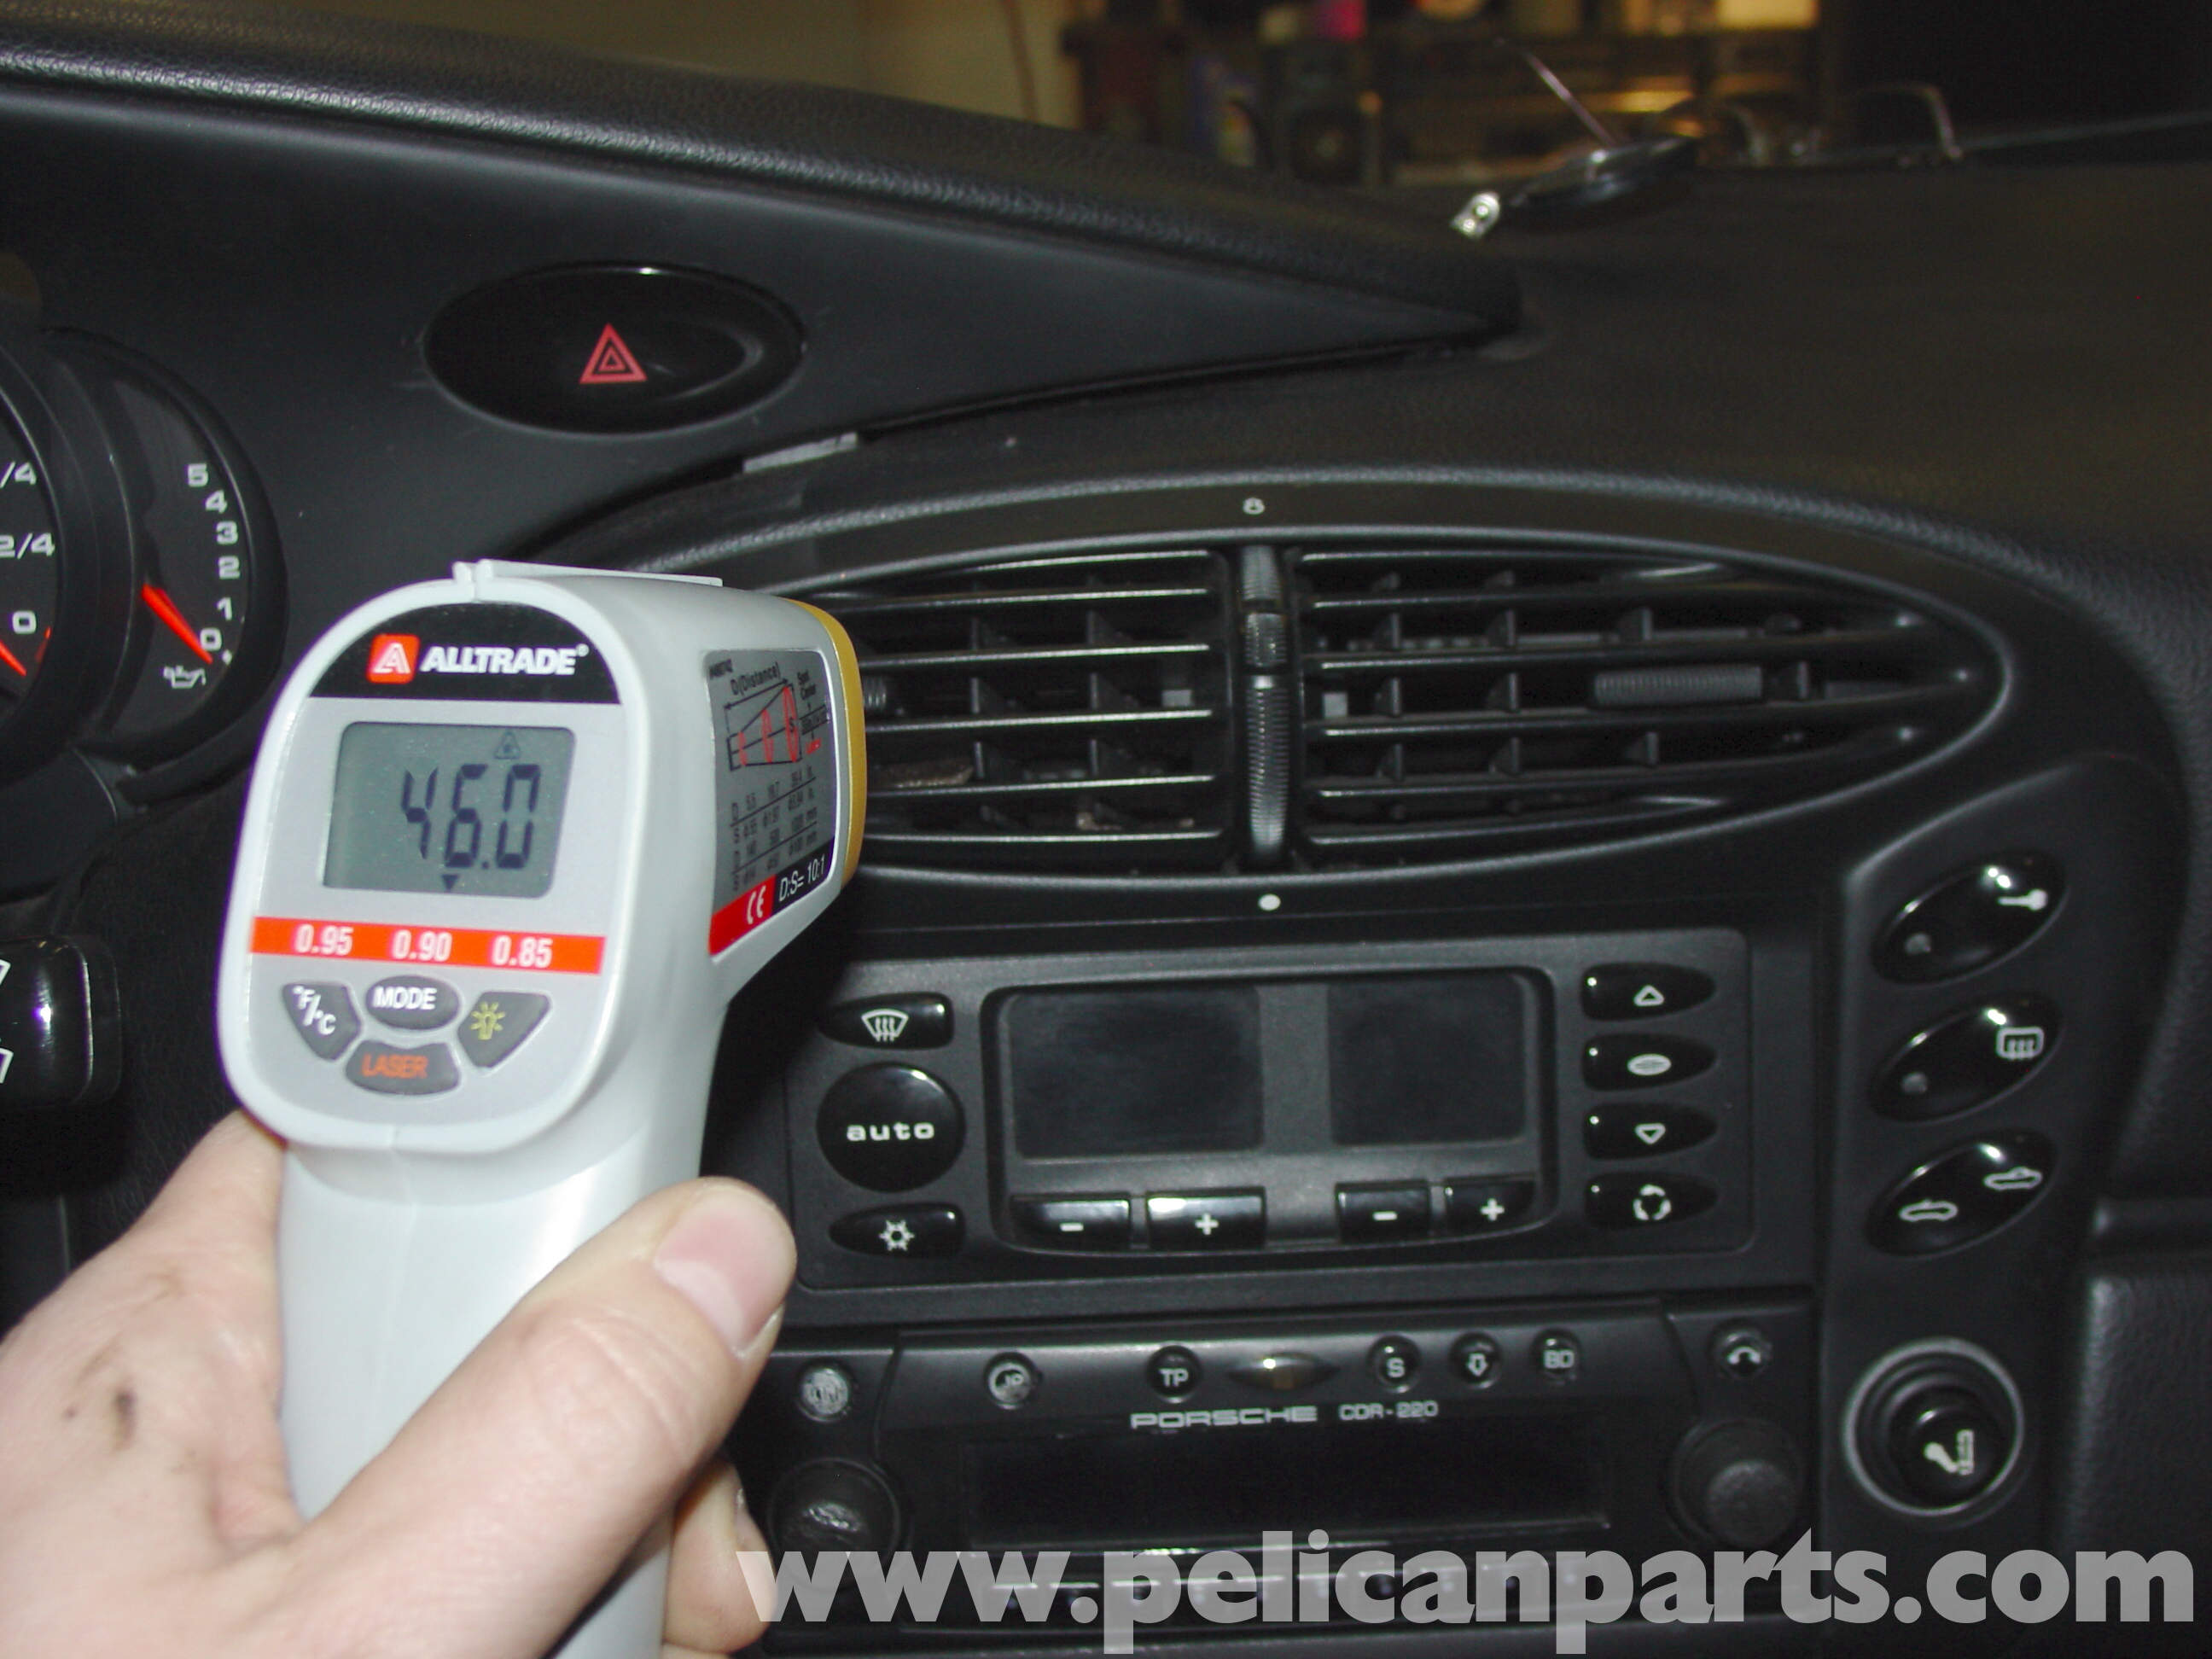 Air Conditioner Refill For Car #866C39